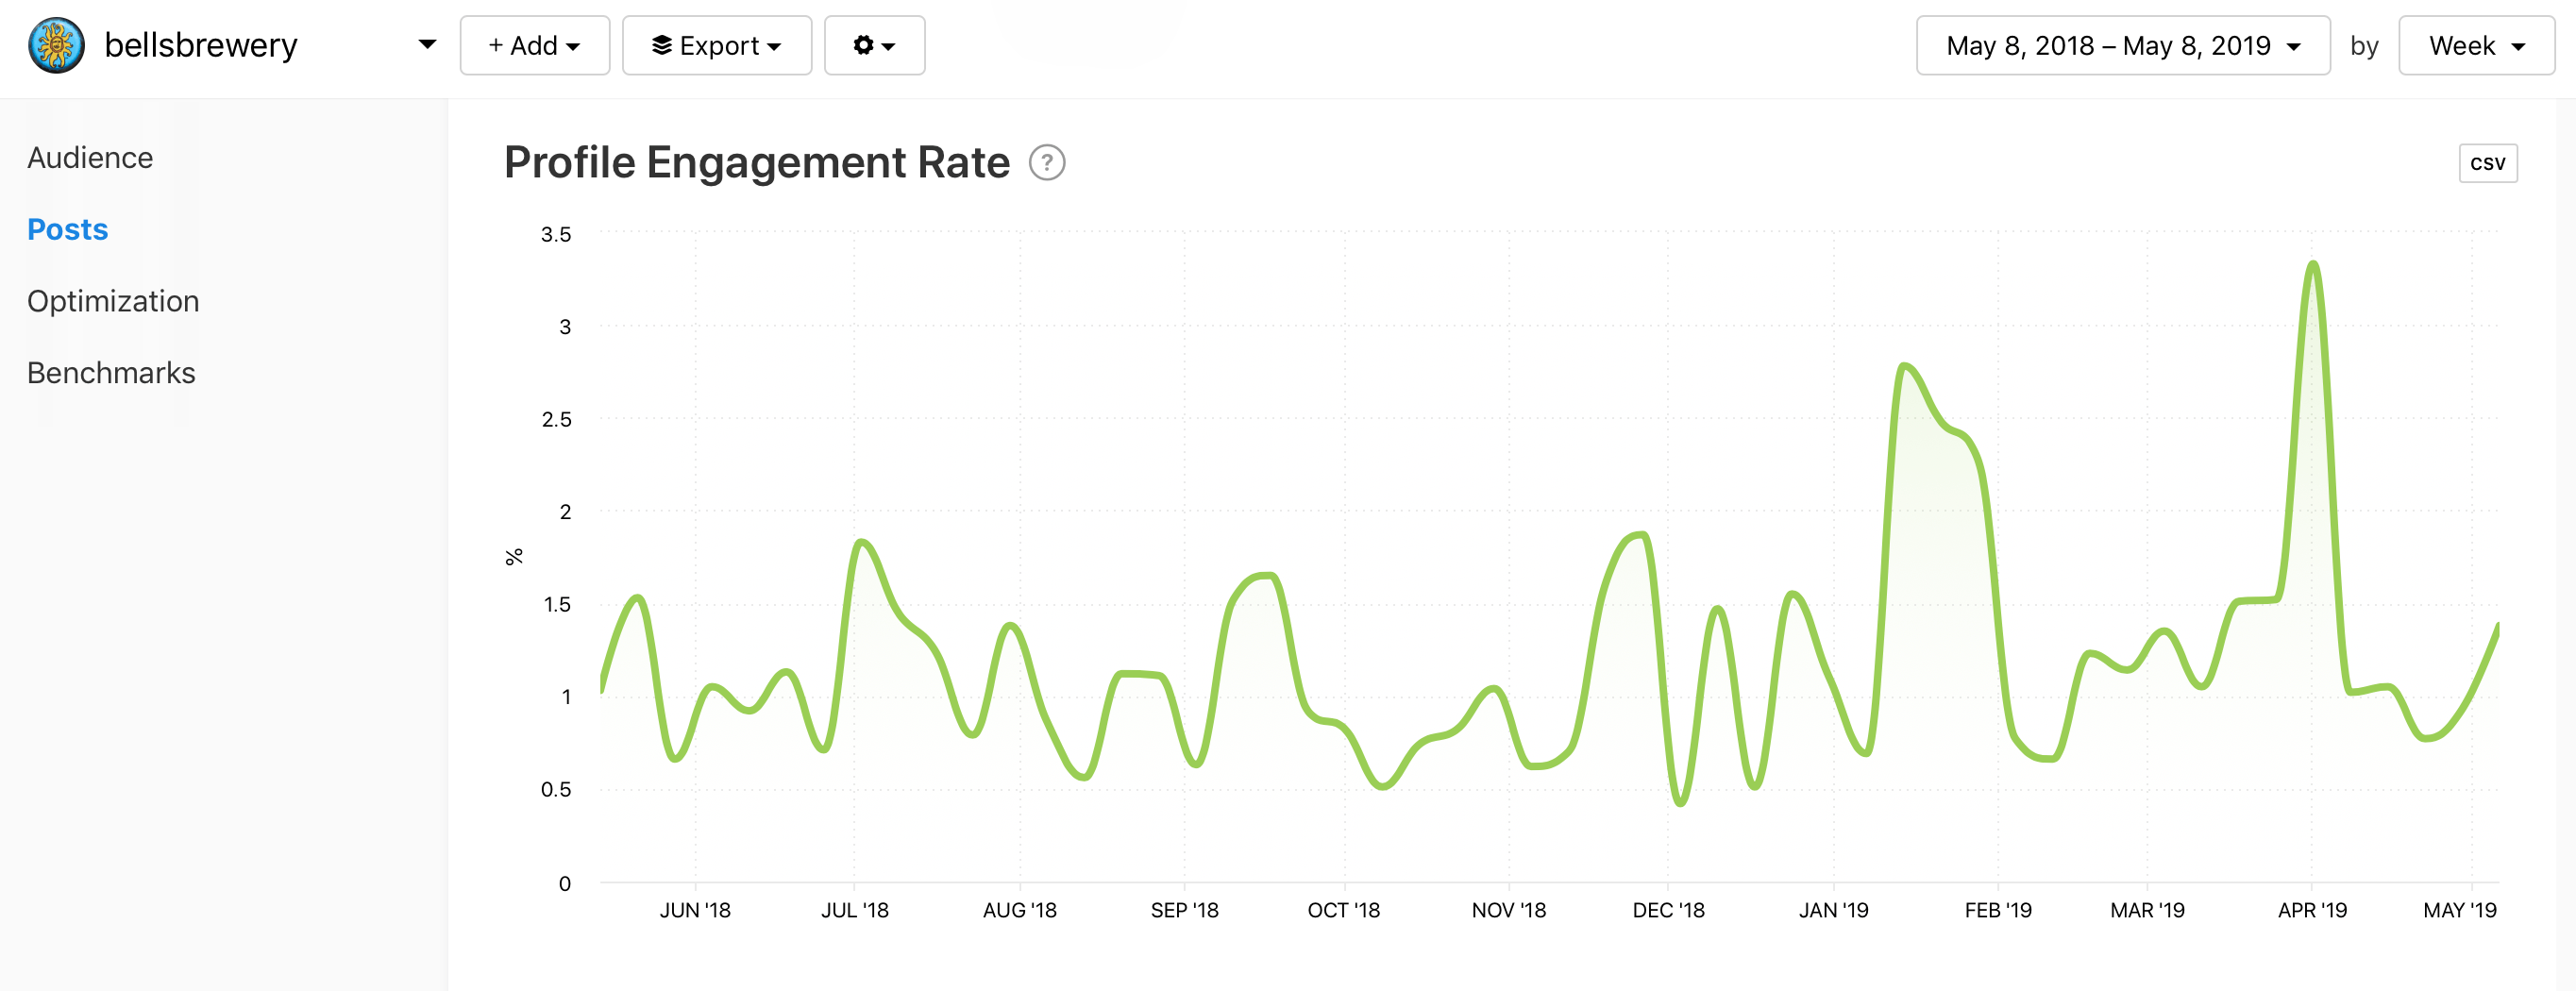 @bellsbrewery Profile Engagement Rate graph by Minter.io